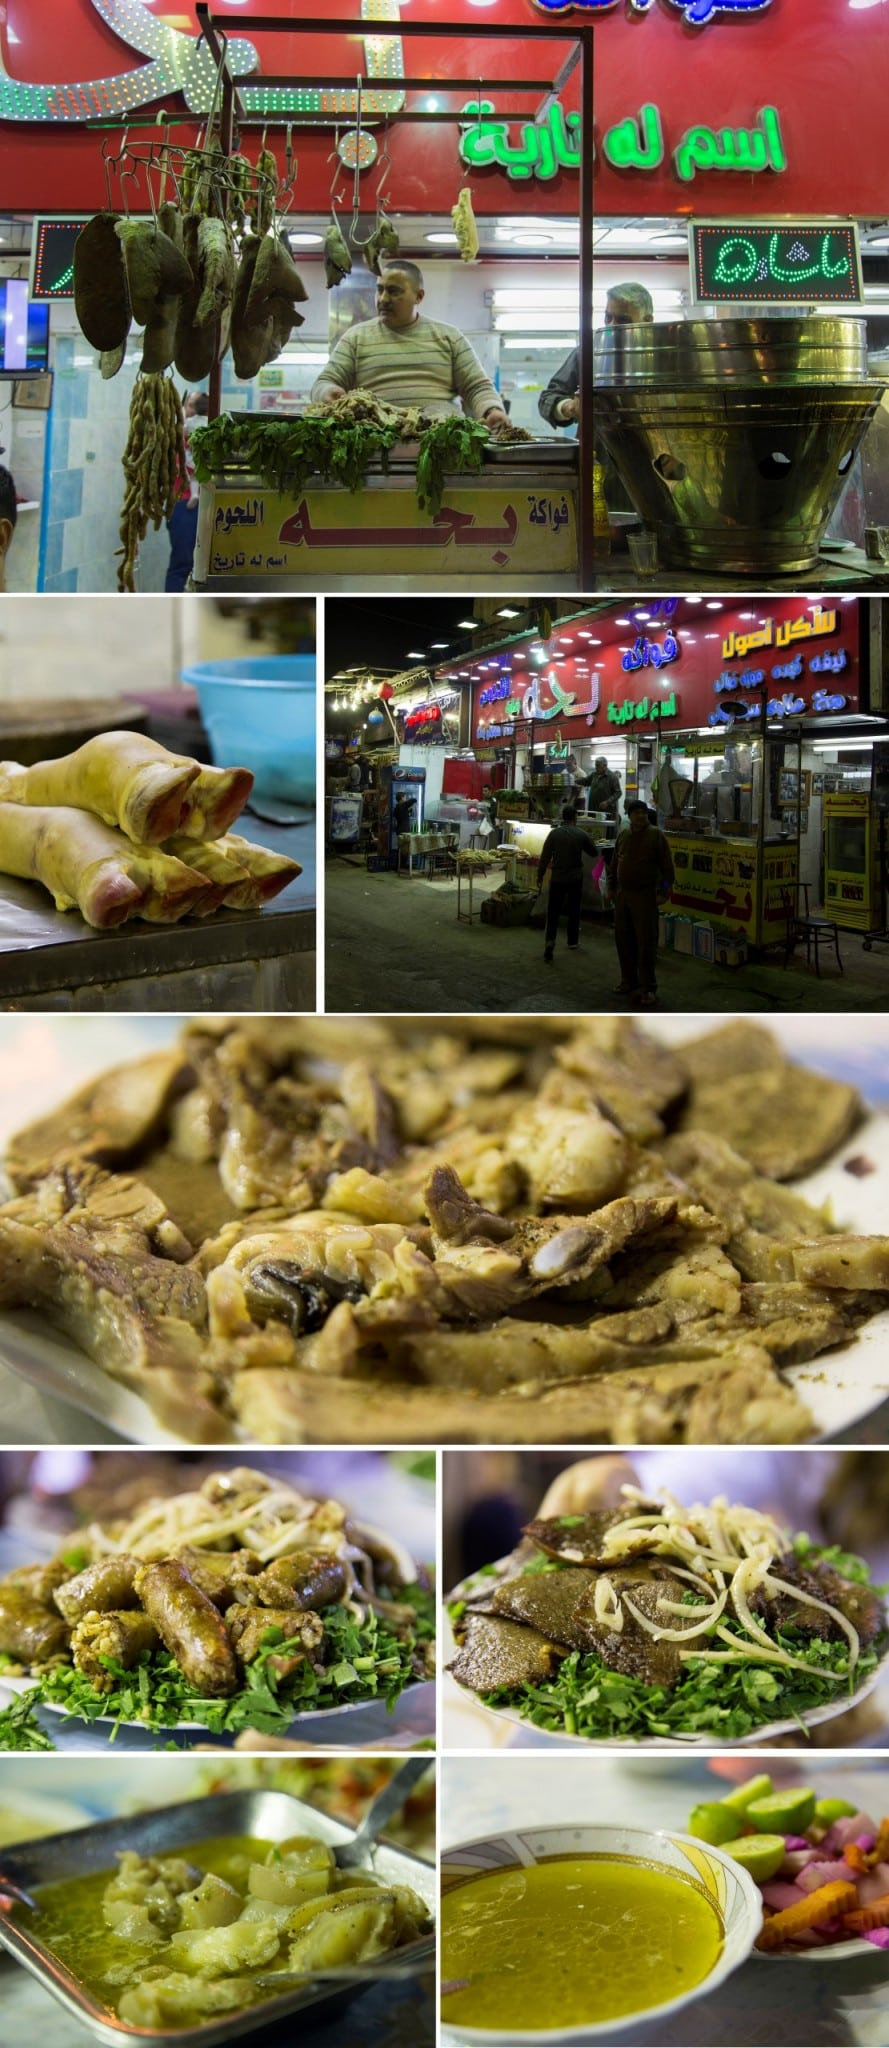 Egypt 6 Restaurant Hotspots In Cairo Which Serve Great Local Food Chris Travel Blog Ctb Global